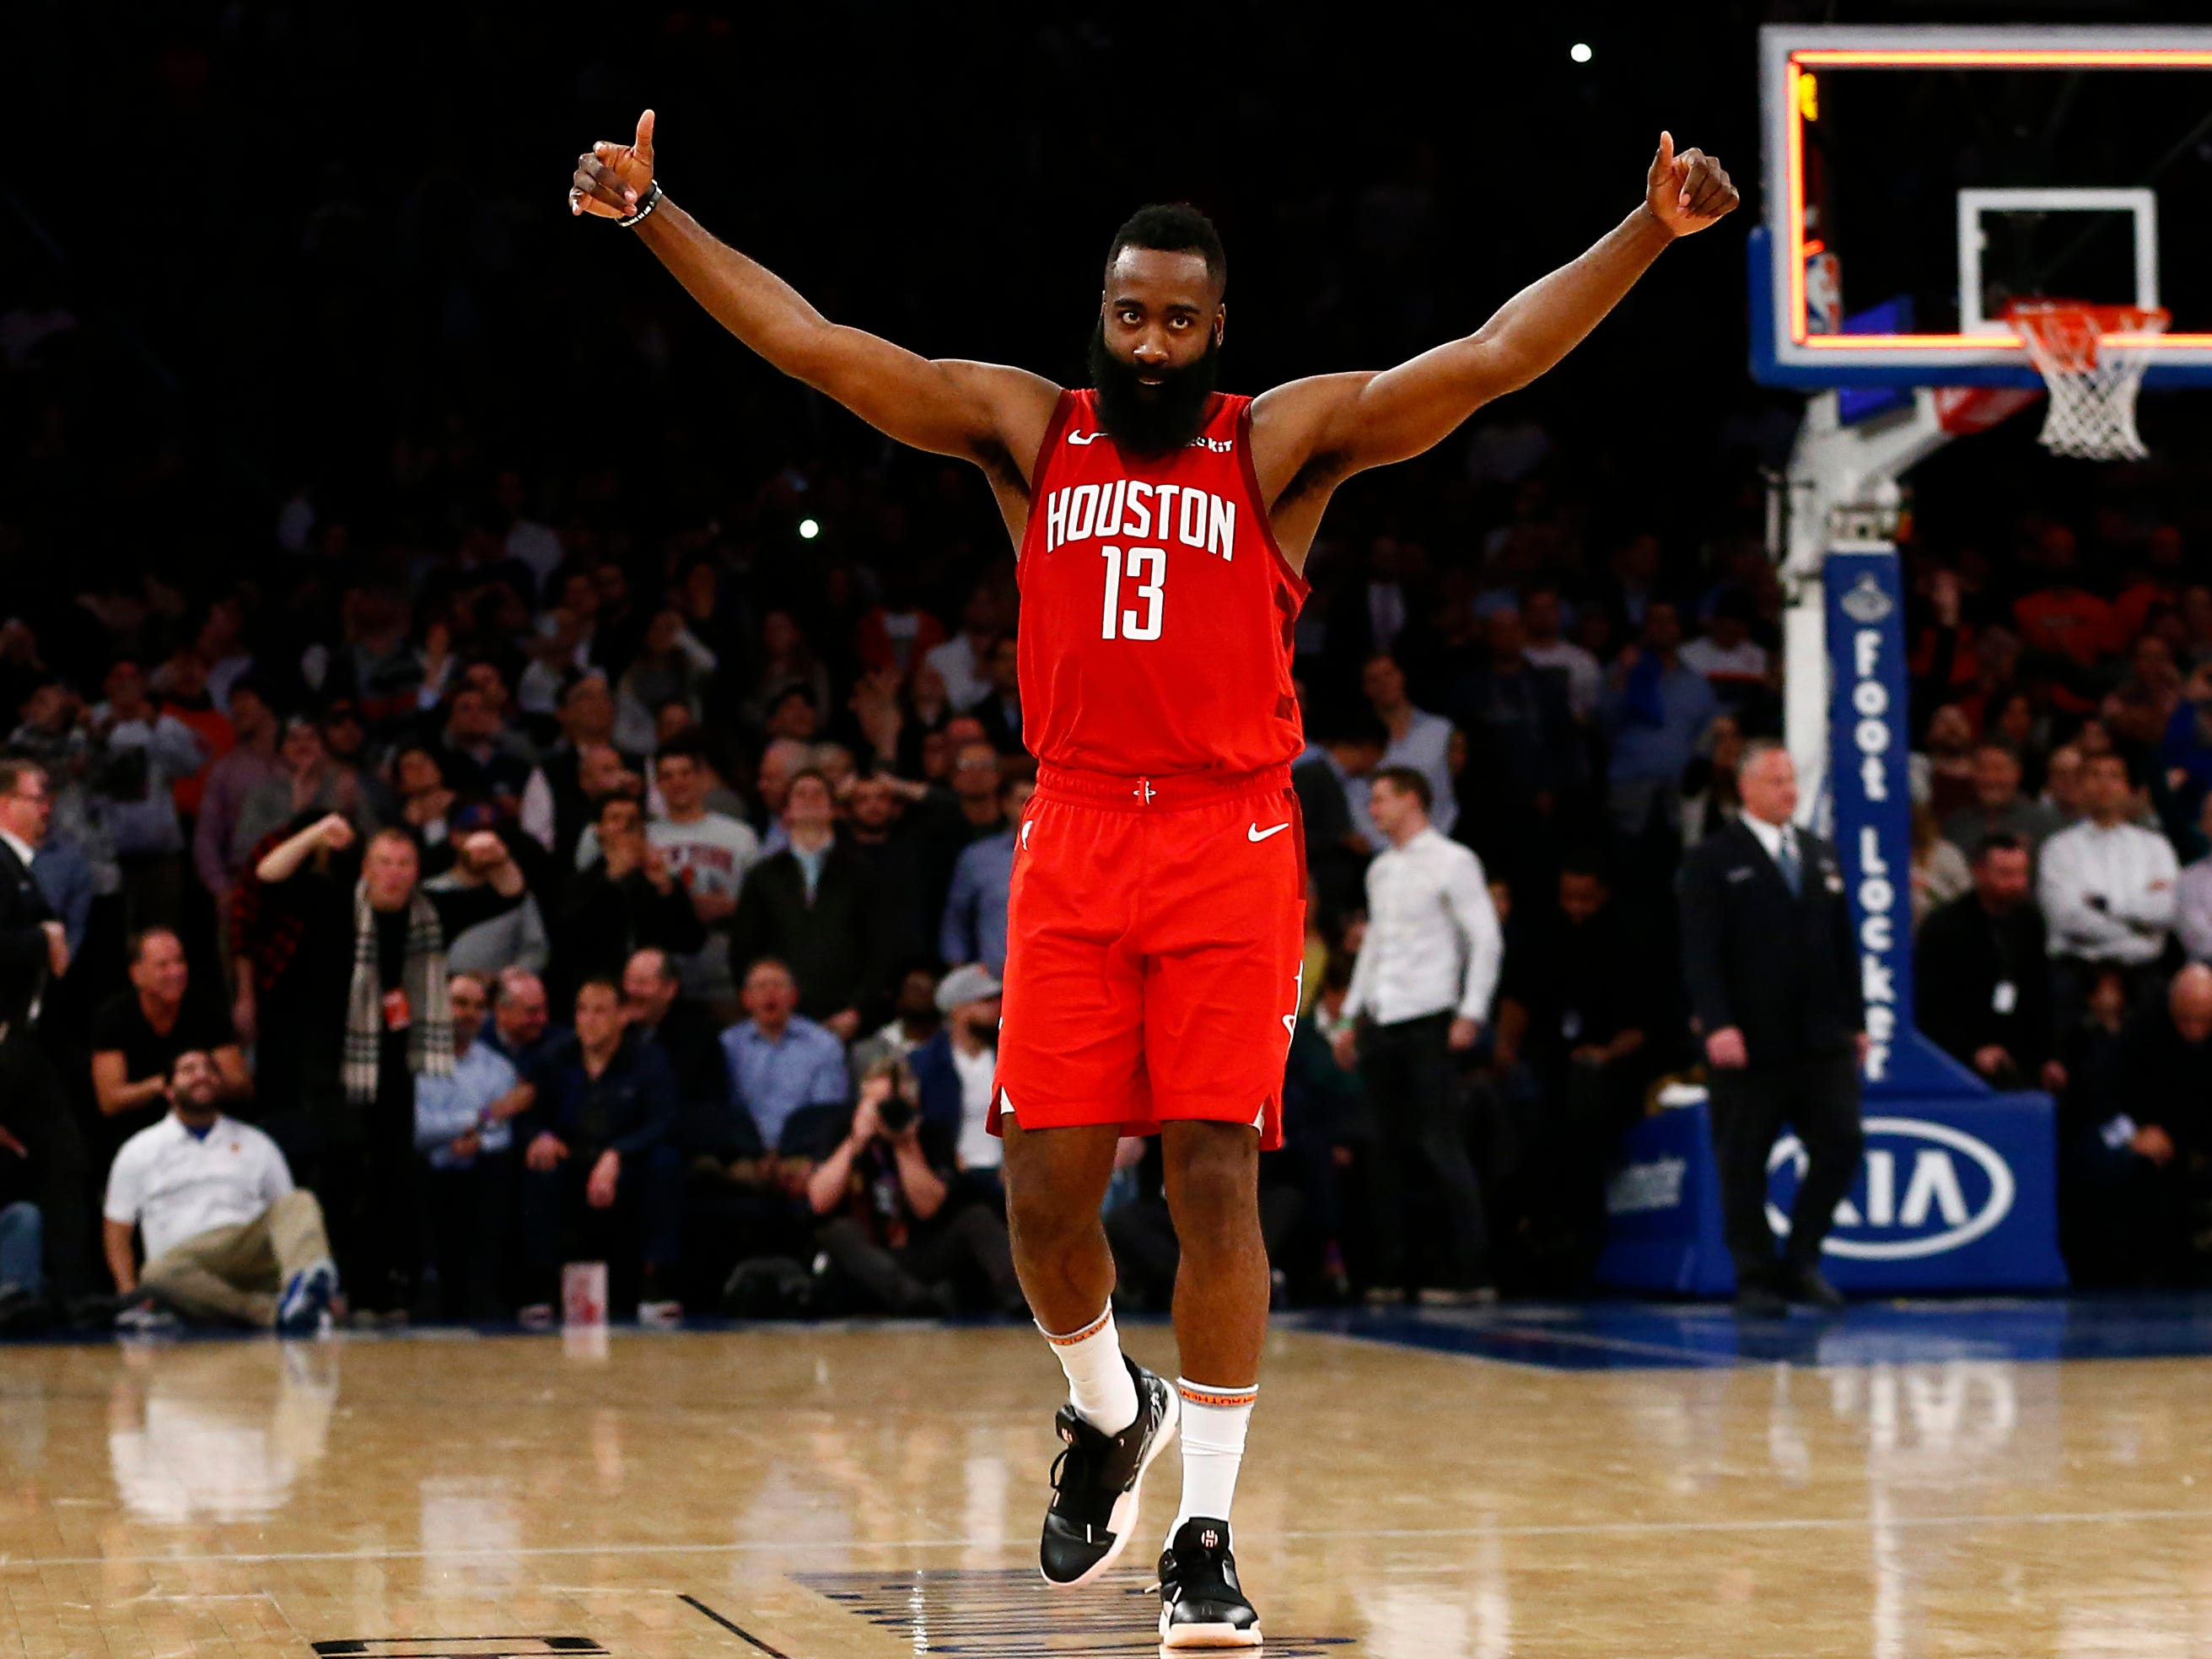 Jan. 23: Rockets star James Harden celebrates after pouring in a career-high 61 points against the Knicks to tie a Madison Square Garden scoring record for opposing players.